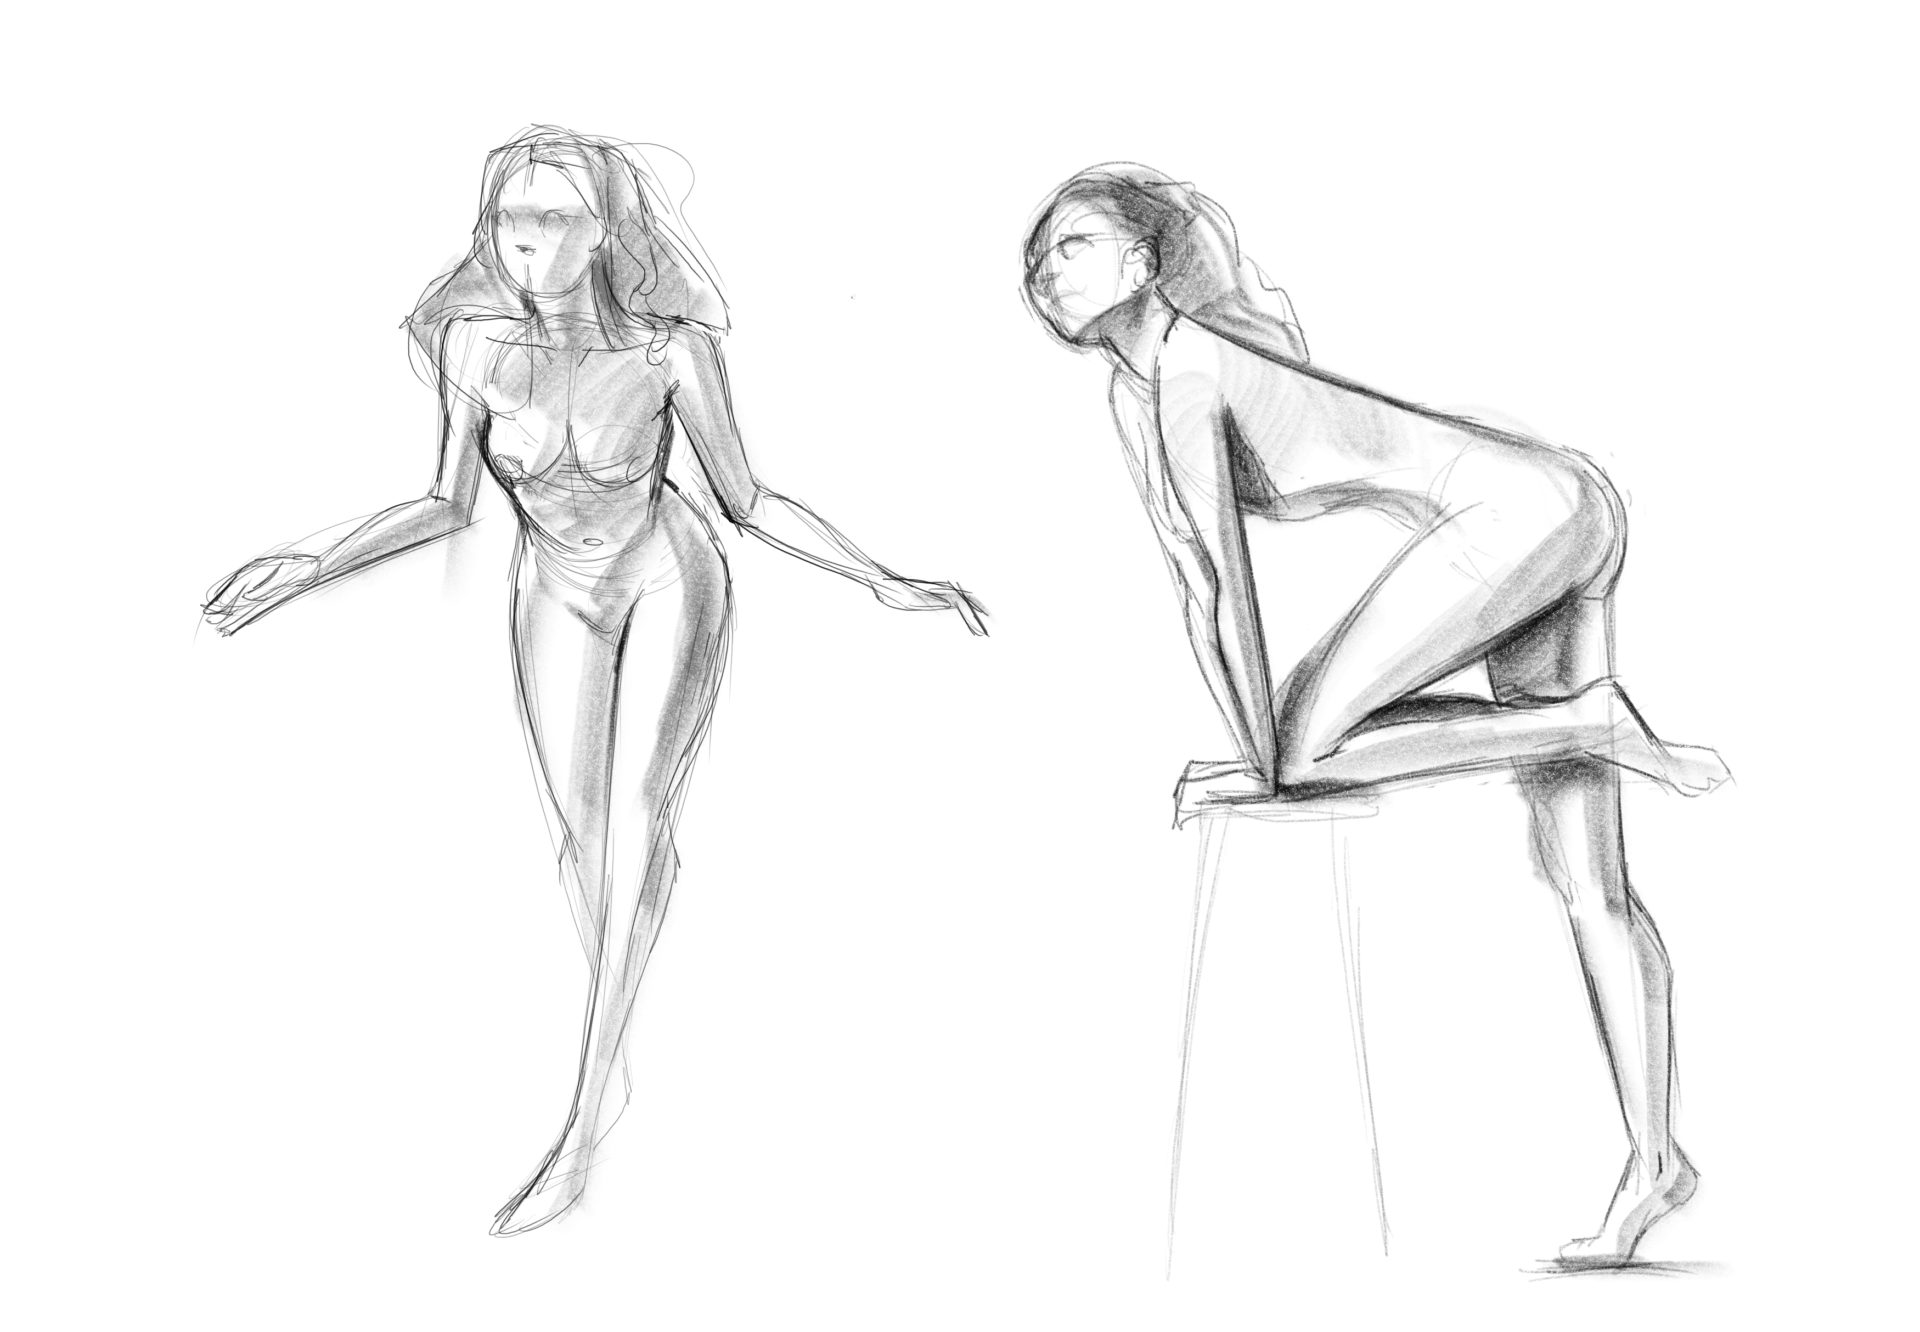 Gesture drawings from Croquis Cafe.